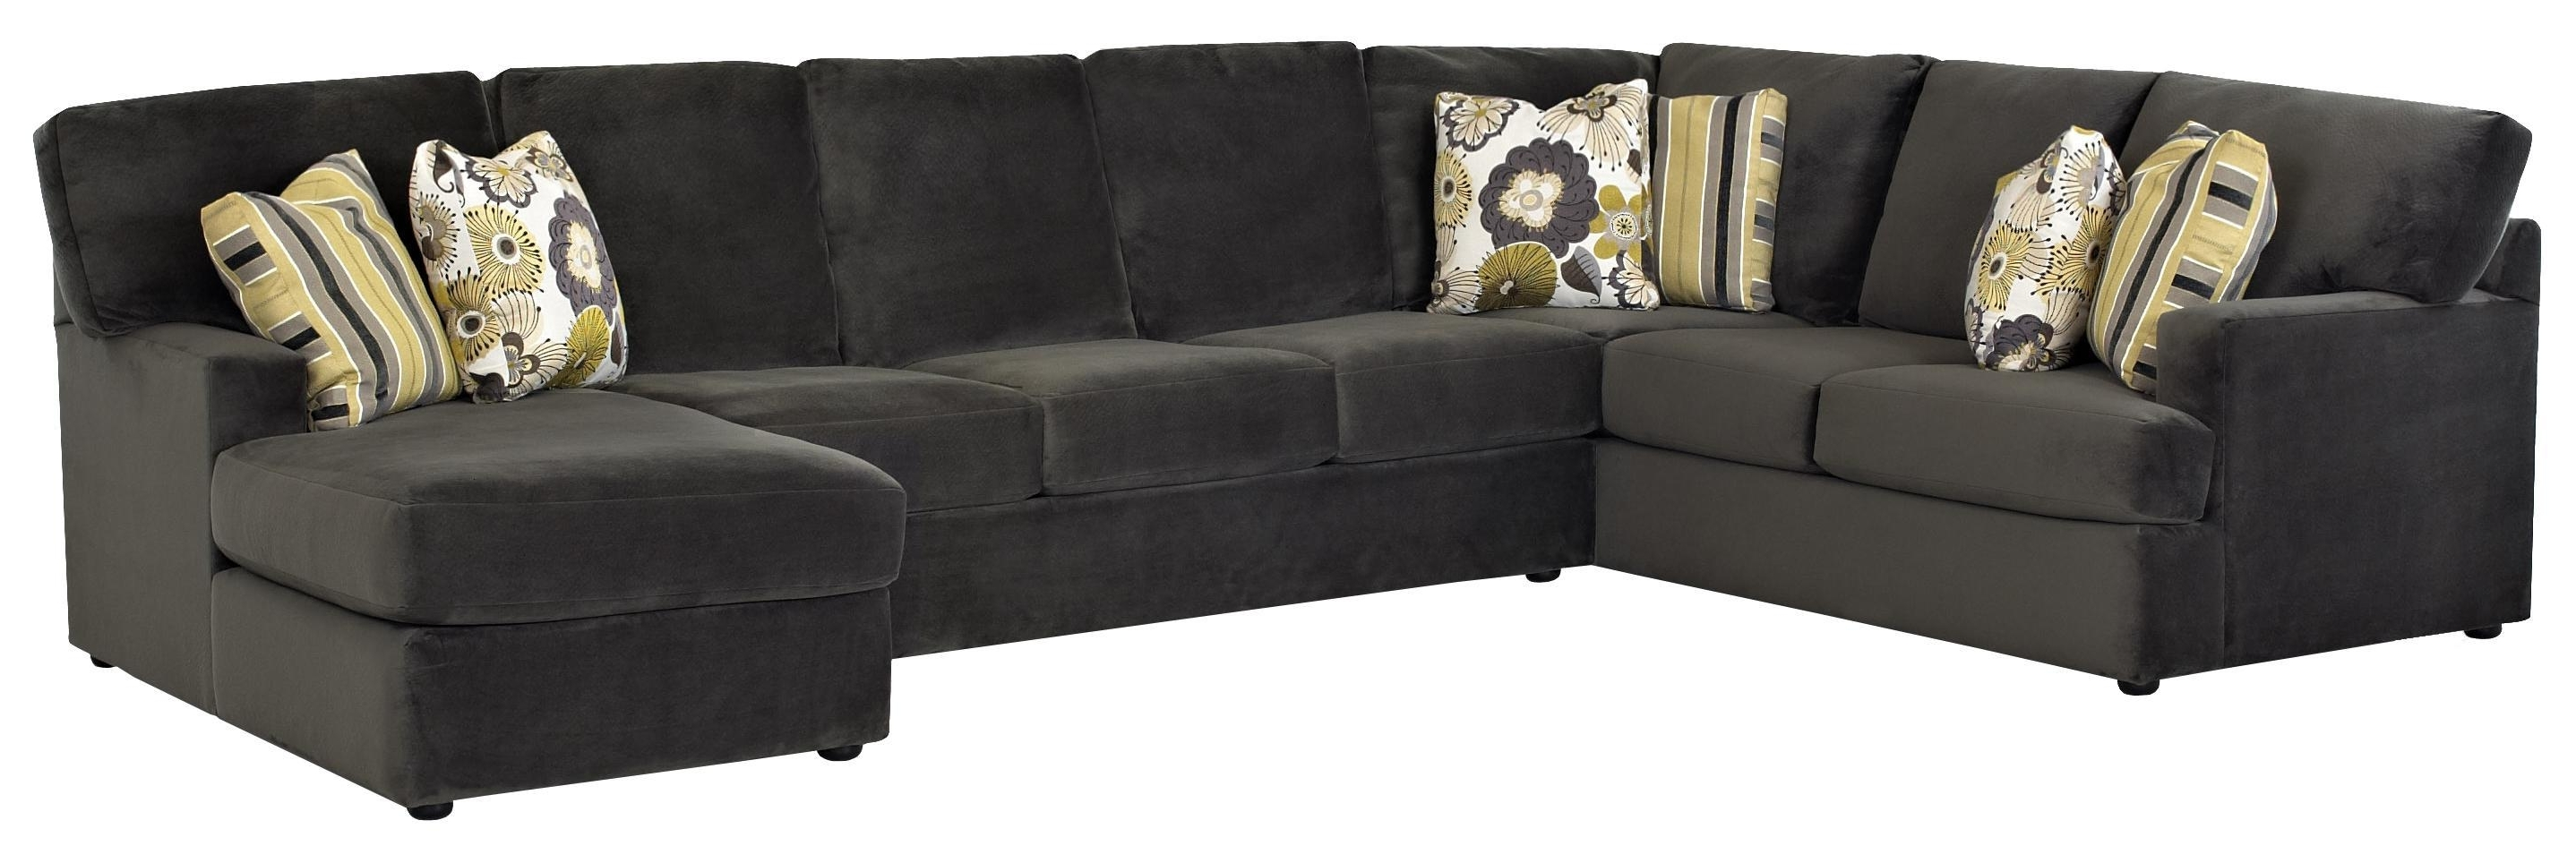 Fashionable Haynes Sectional Sofas Throughout Stunning The Dump Furniture Sectional Sofa For Home Pic Haynes (View 1 of 15)